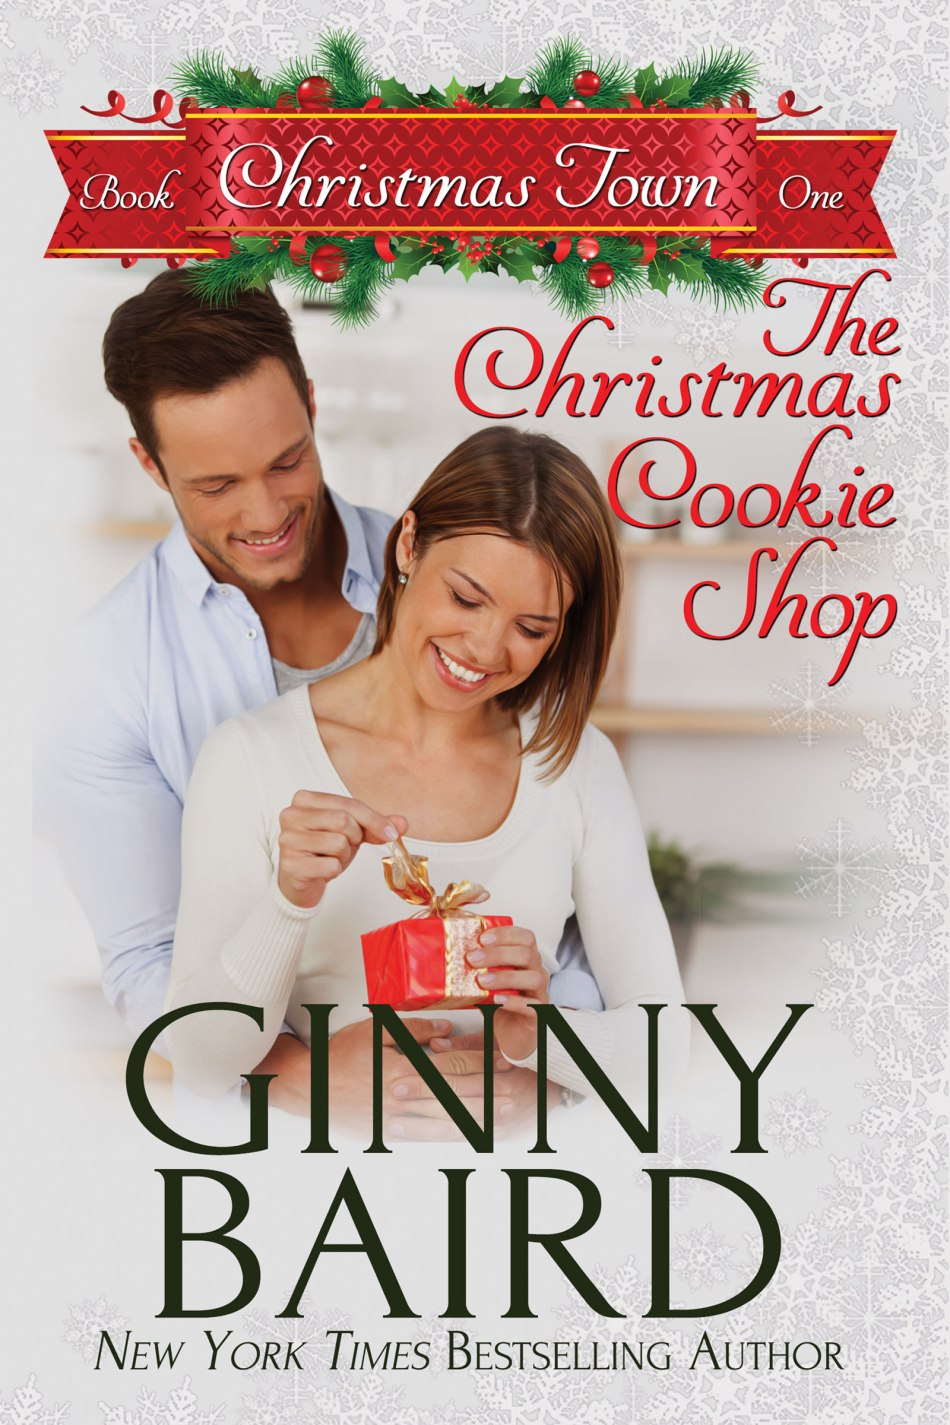 mediakit_bookcover_thechristmascookieshop